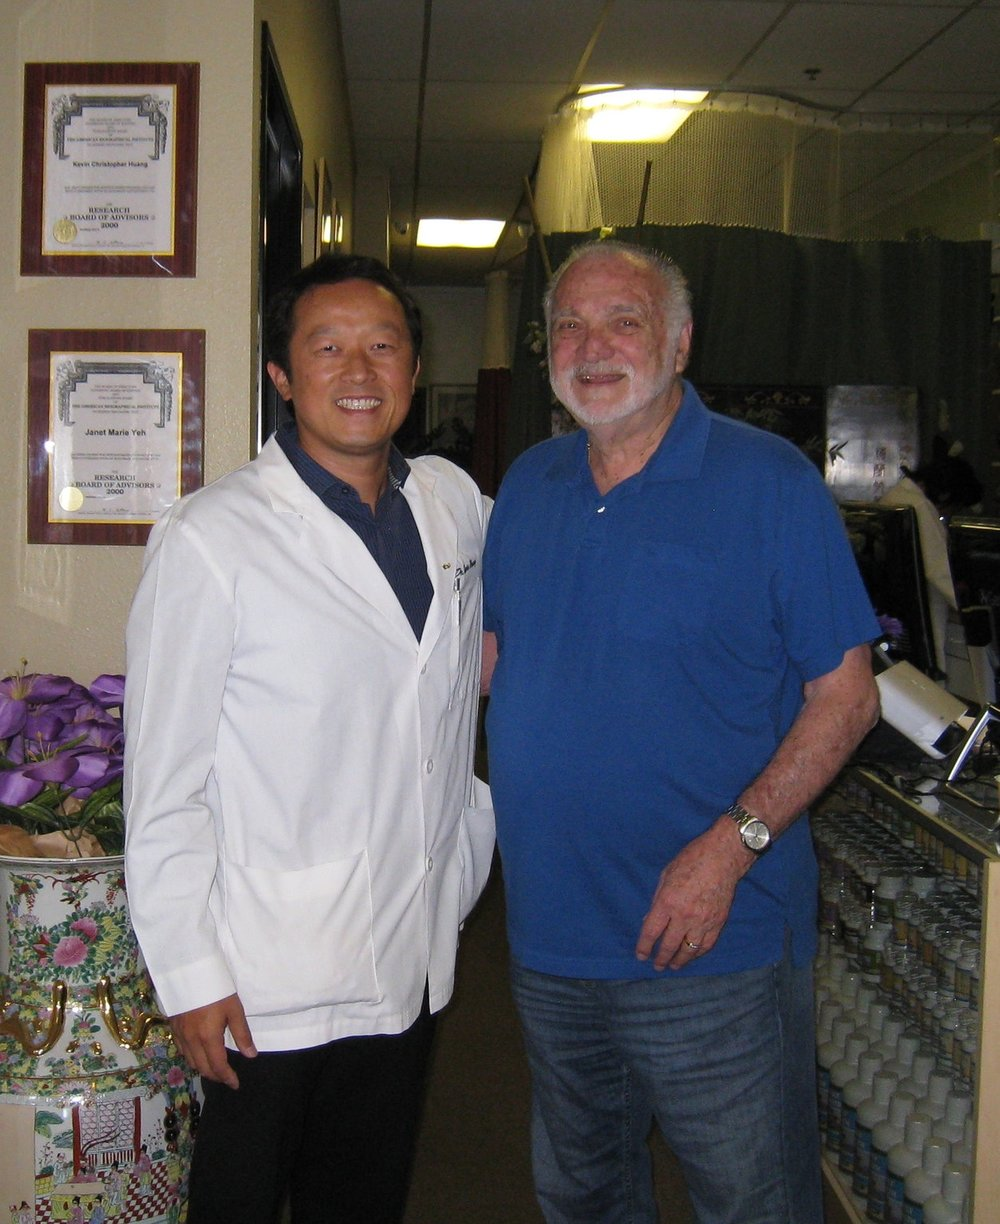 I WOULD REFER EVERYONE AND ANYONE BECAUSE OF THE RESULTS | SHINGLES PAIN AND NUMBNESS WAS CONSTANT | ACUPUNCTURE, HERBS, NUTRITION |  I did whatever Dr. Huang told me to do and it resolved the pain and numbness. They accomplished what medical doctors couldn't and I'm satisfied with the results. I started making progress within a month.